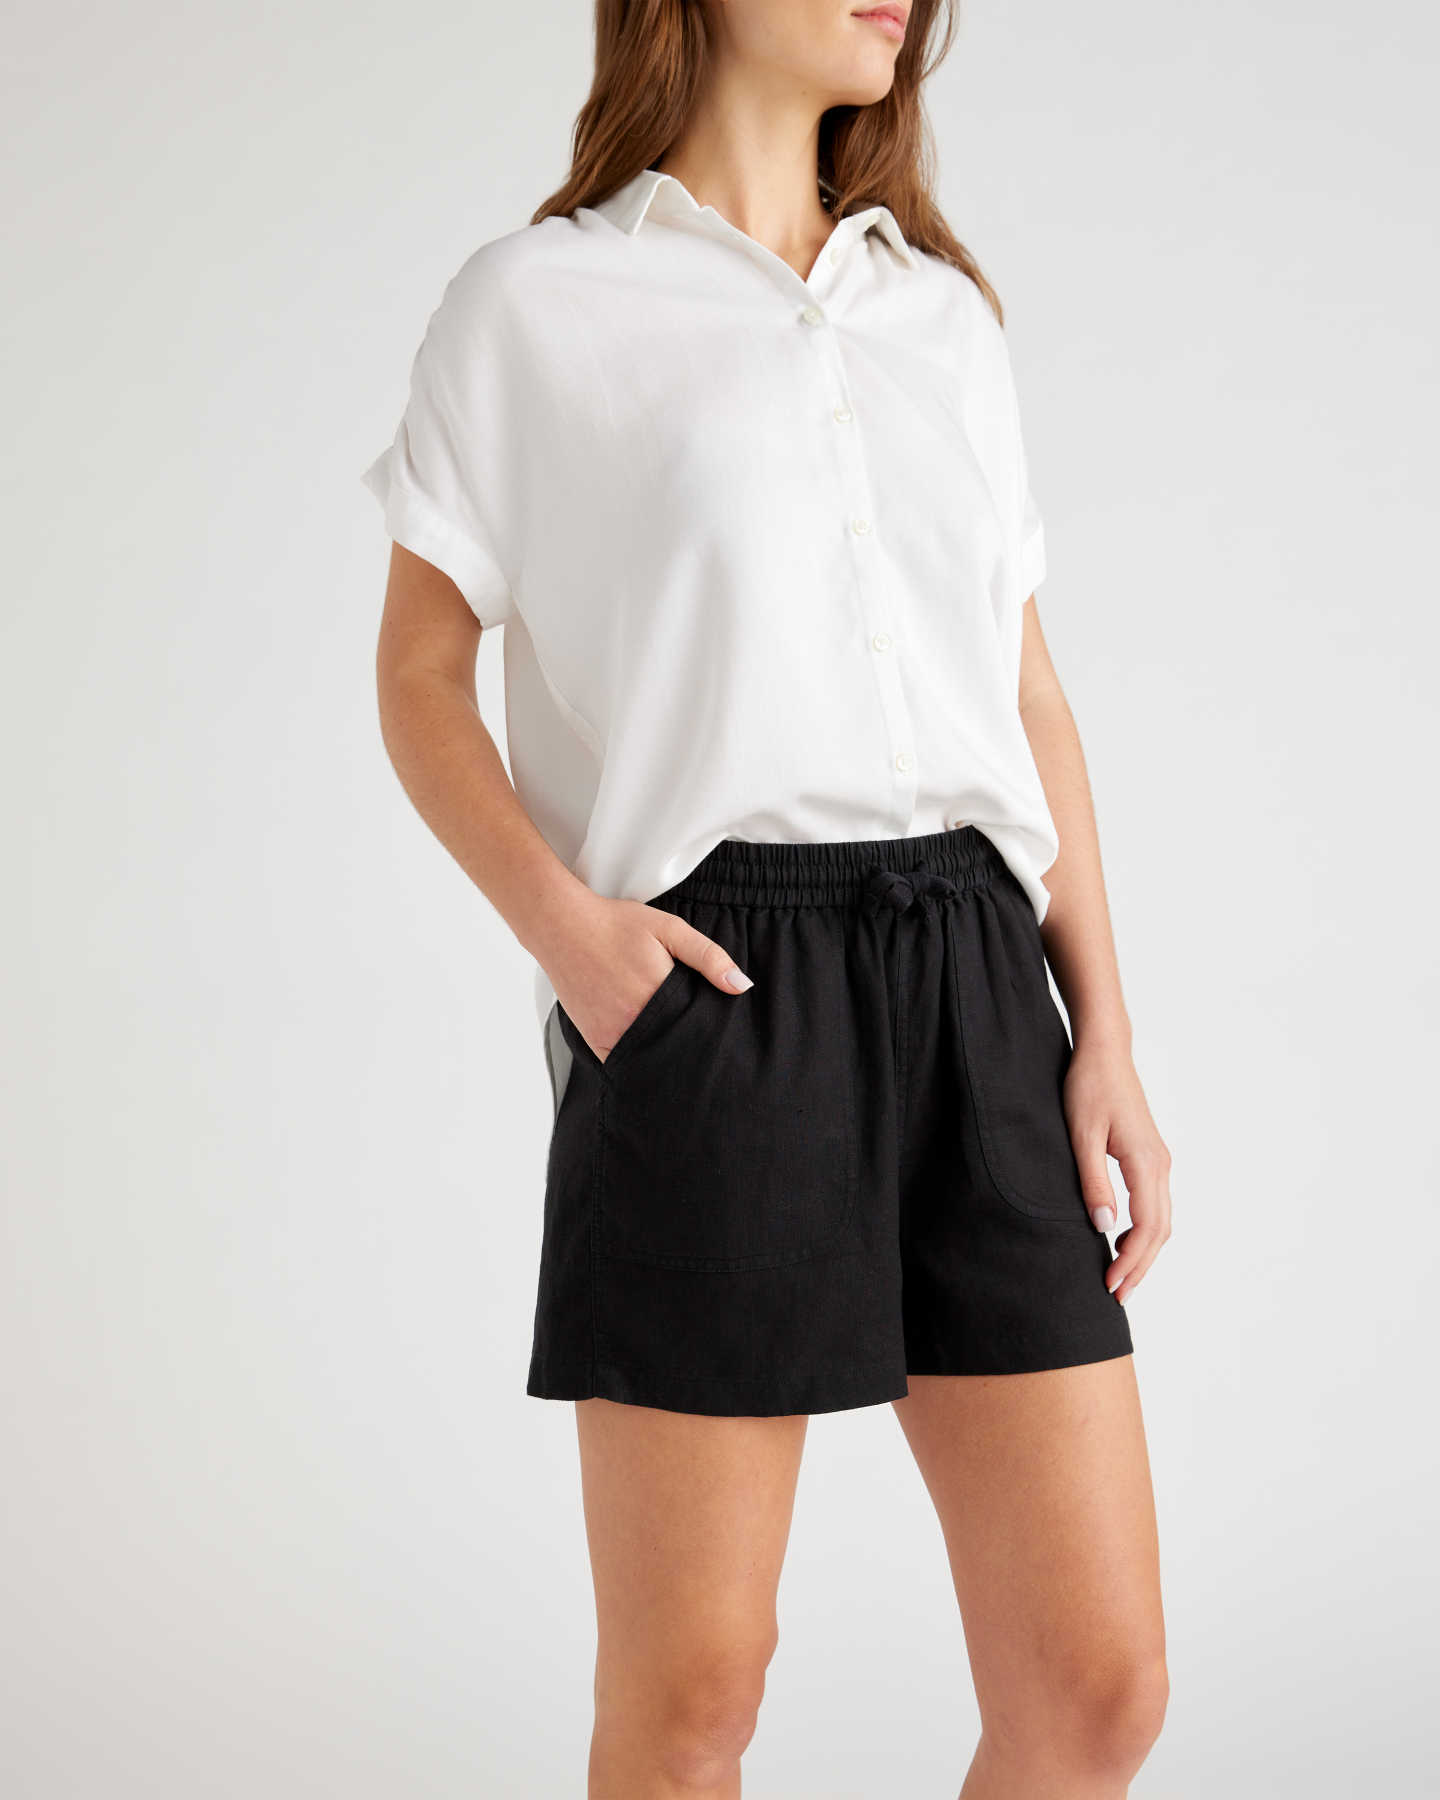 Pair With - 100% Organic Linen Shorts - Black